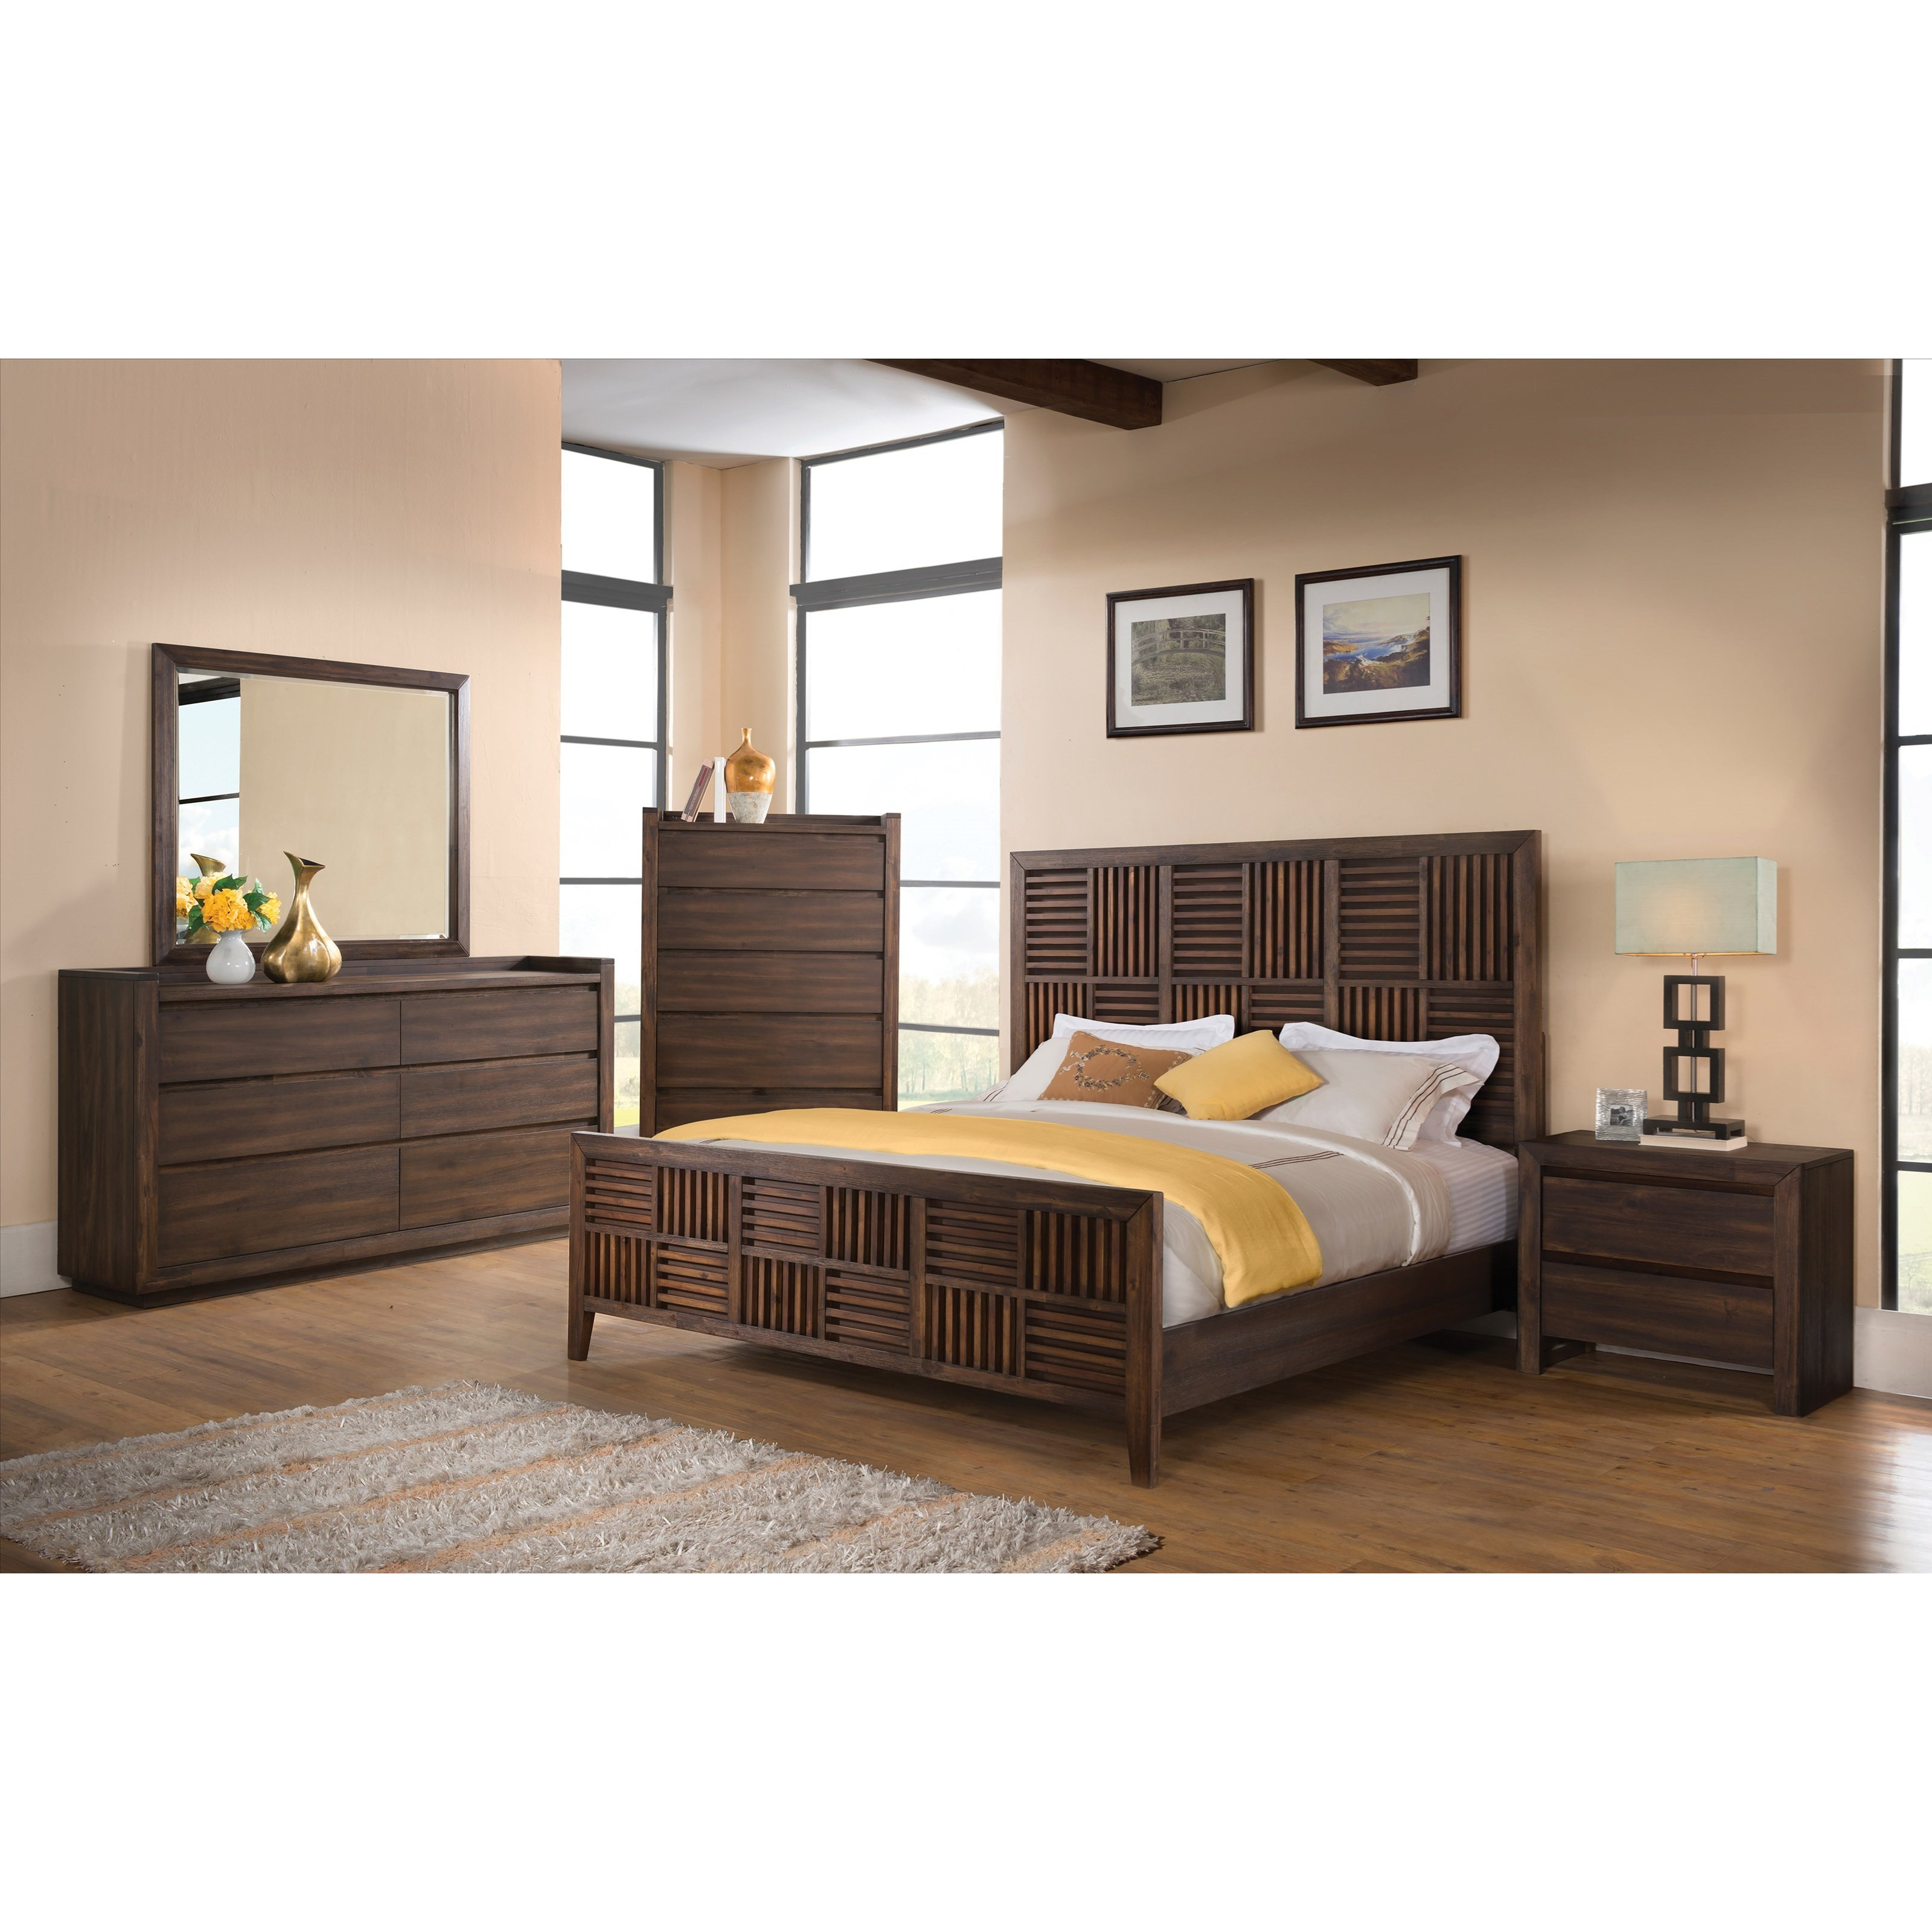 furniture for small bedroom riverside furniture modern gatherings 15365 5 drawer chest 15365